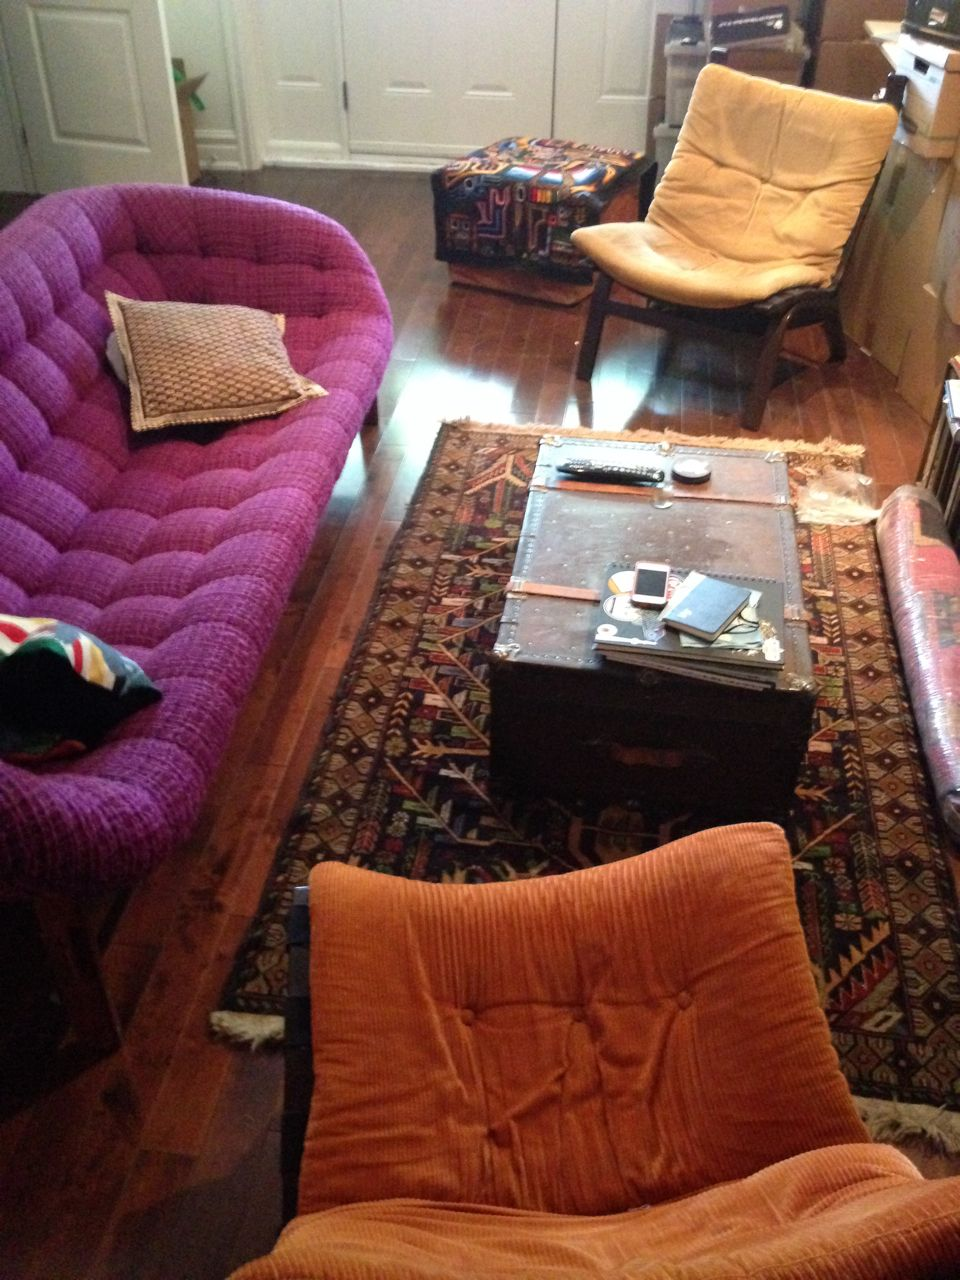 Best Craigslist Couch And Chairs Home Decor Furniture Decor 400 x 300